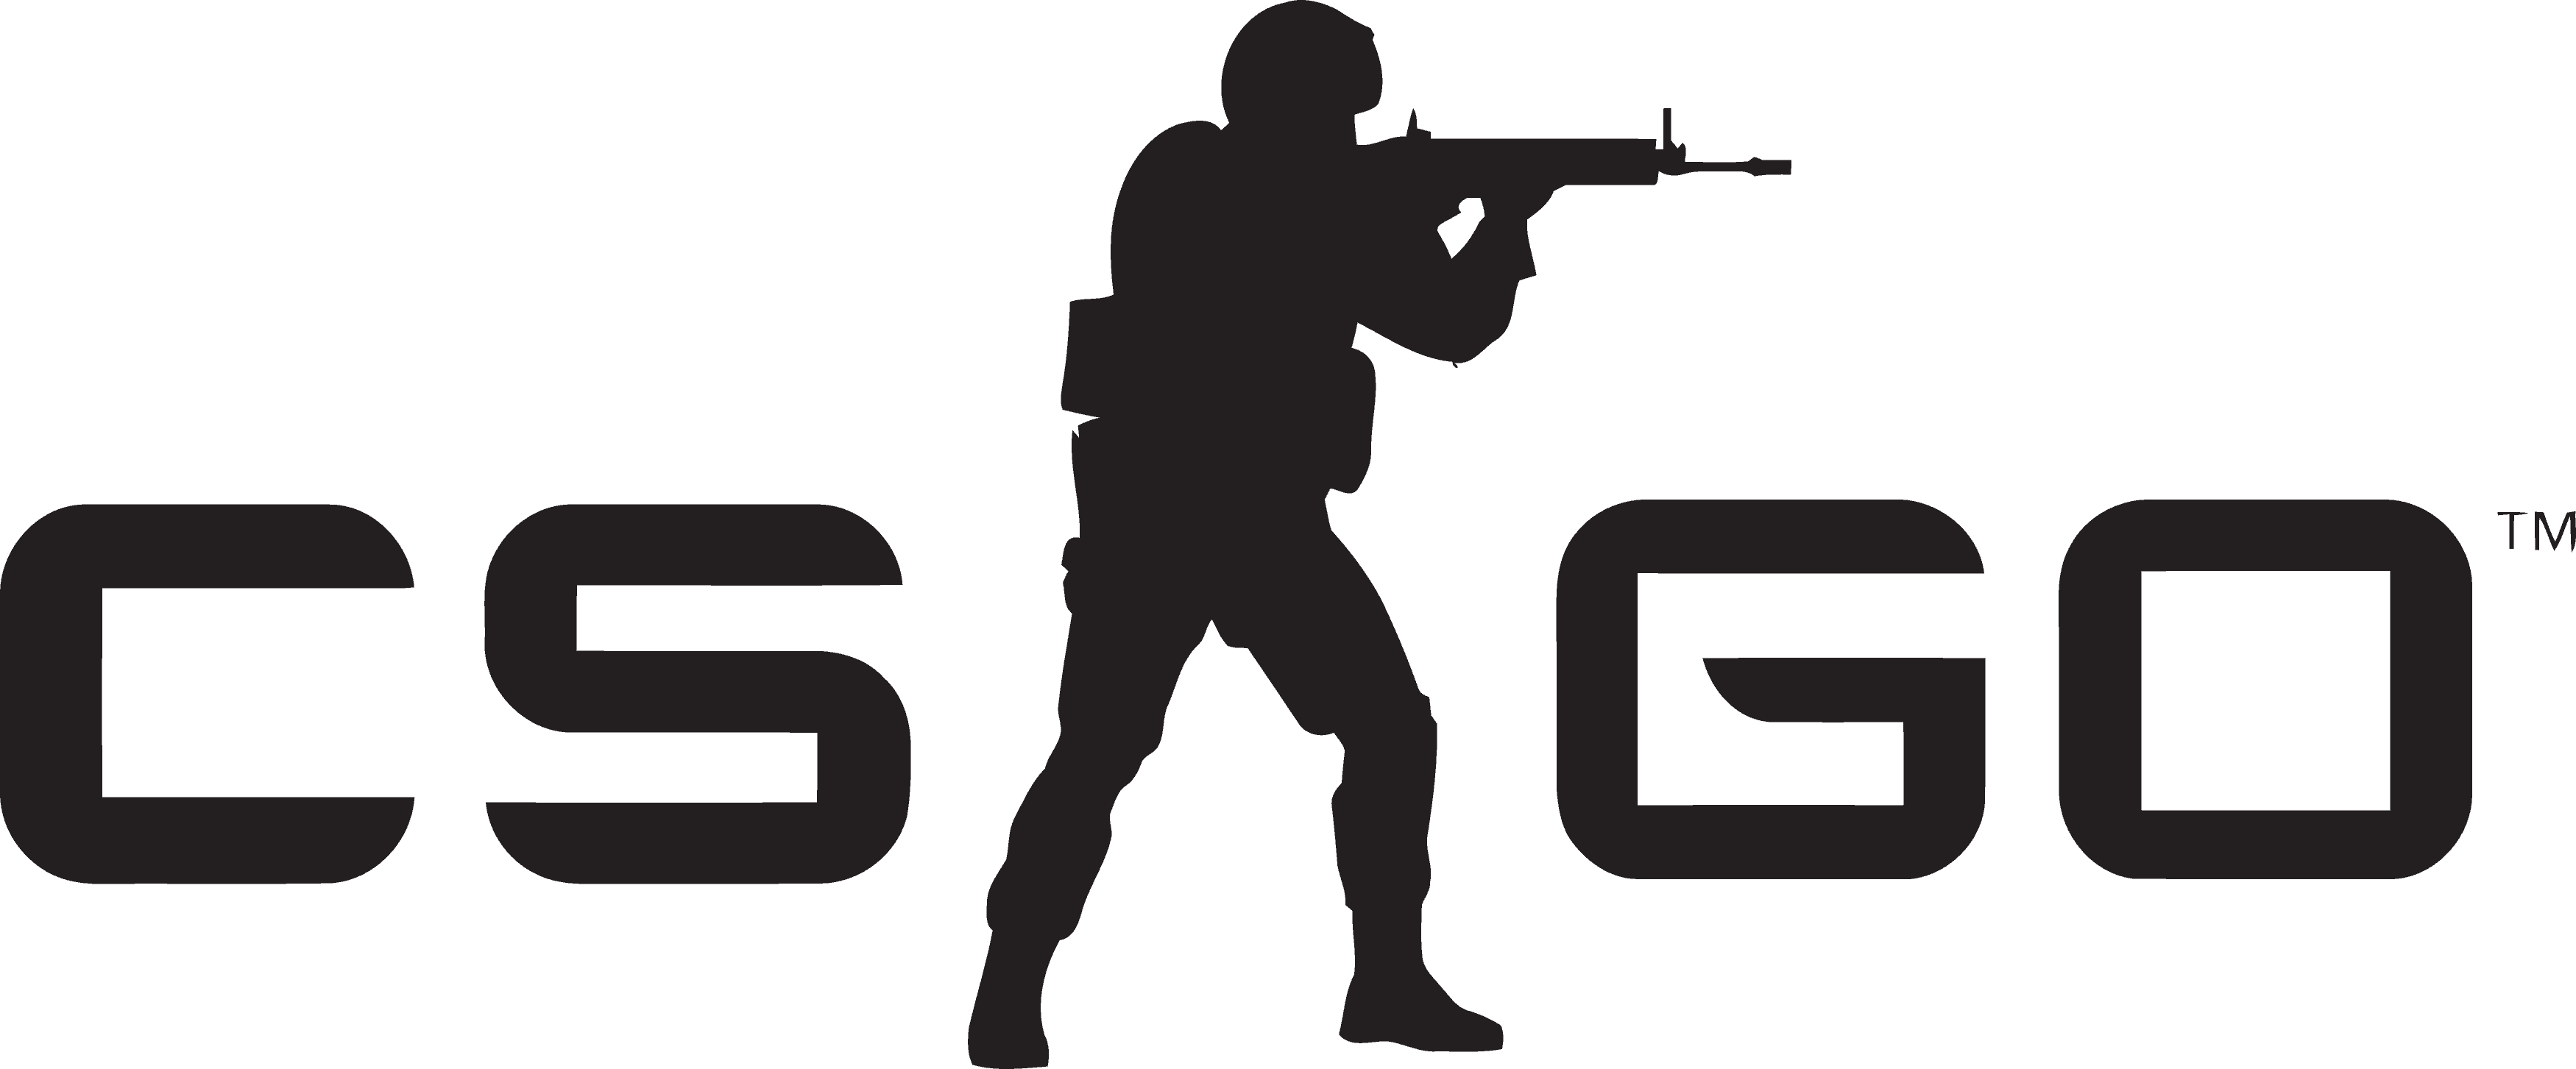 counter-strike-global-offensive-logo-image